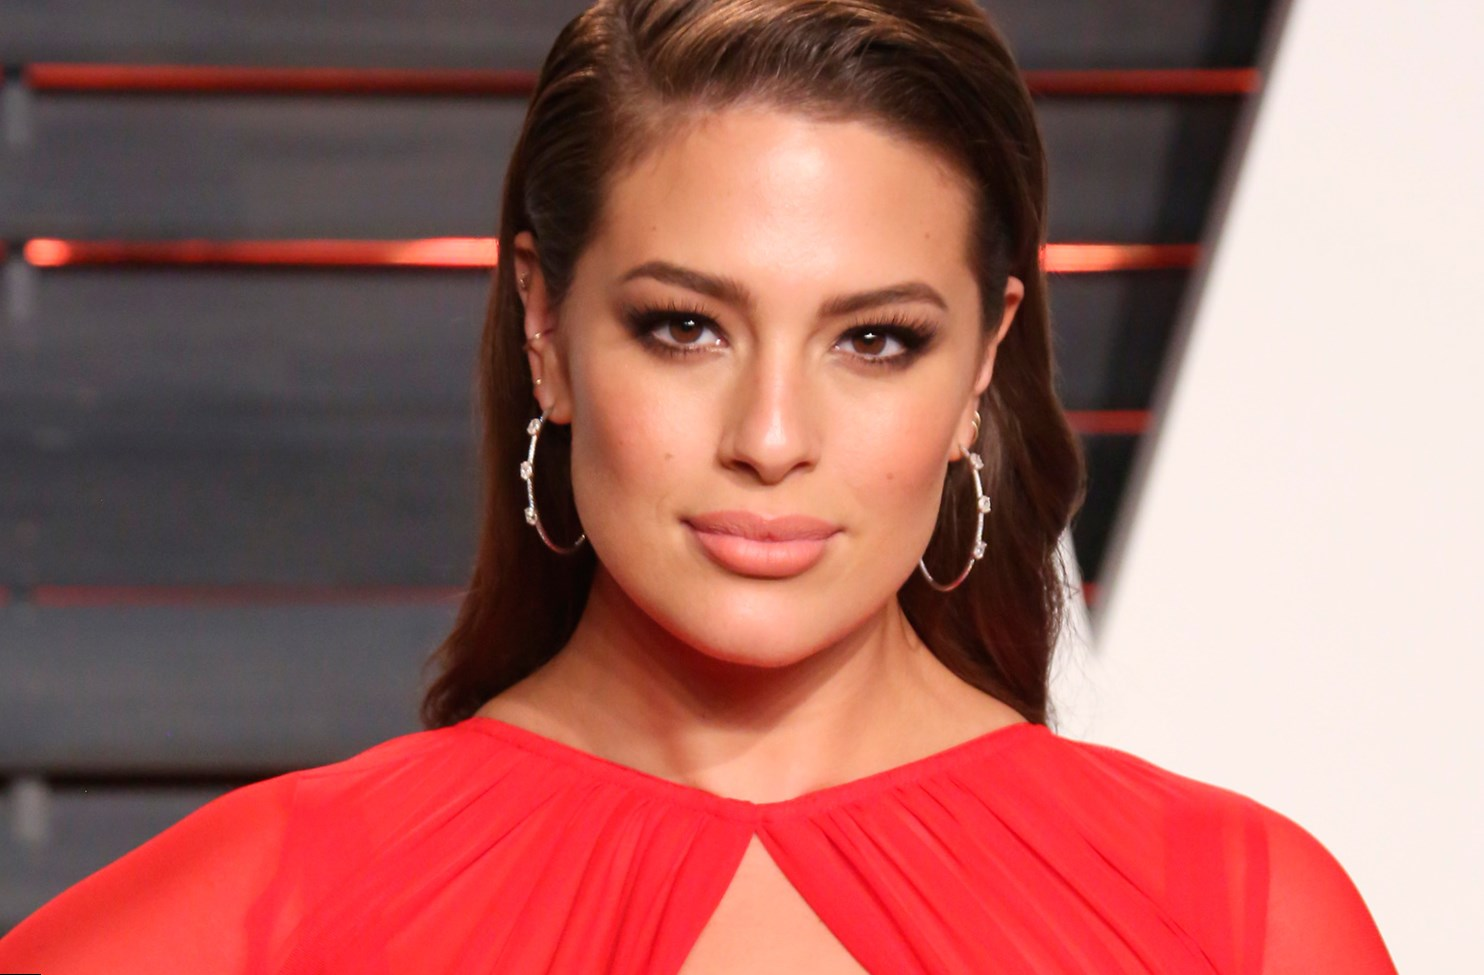 Ashley graham height weight age and body measurements for Model height